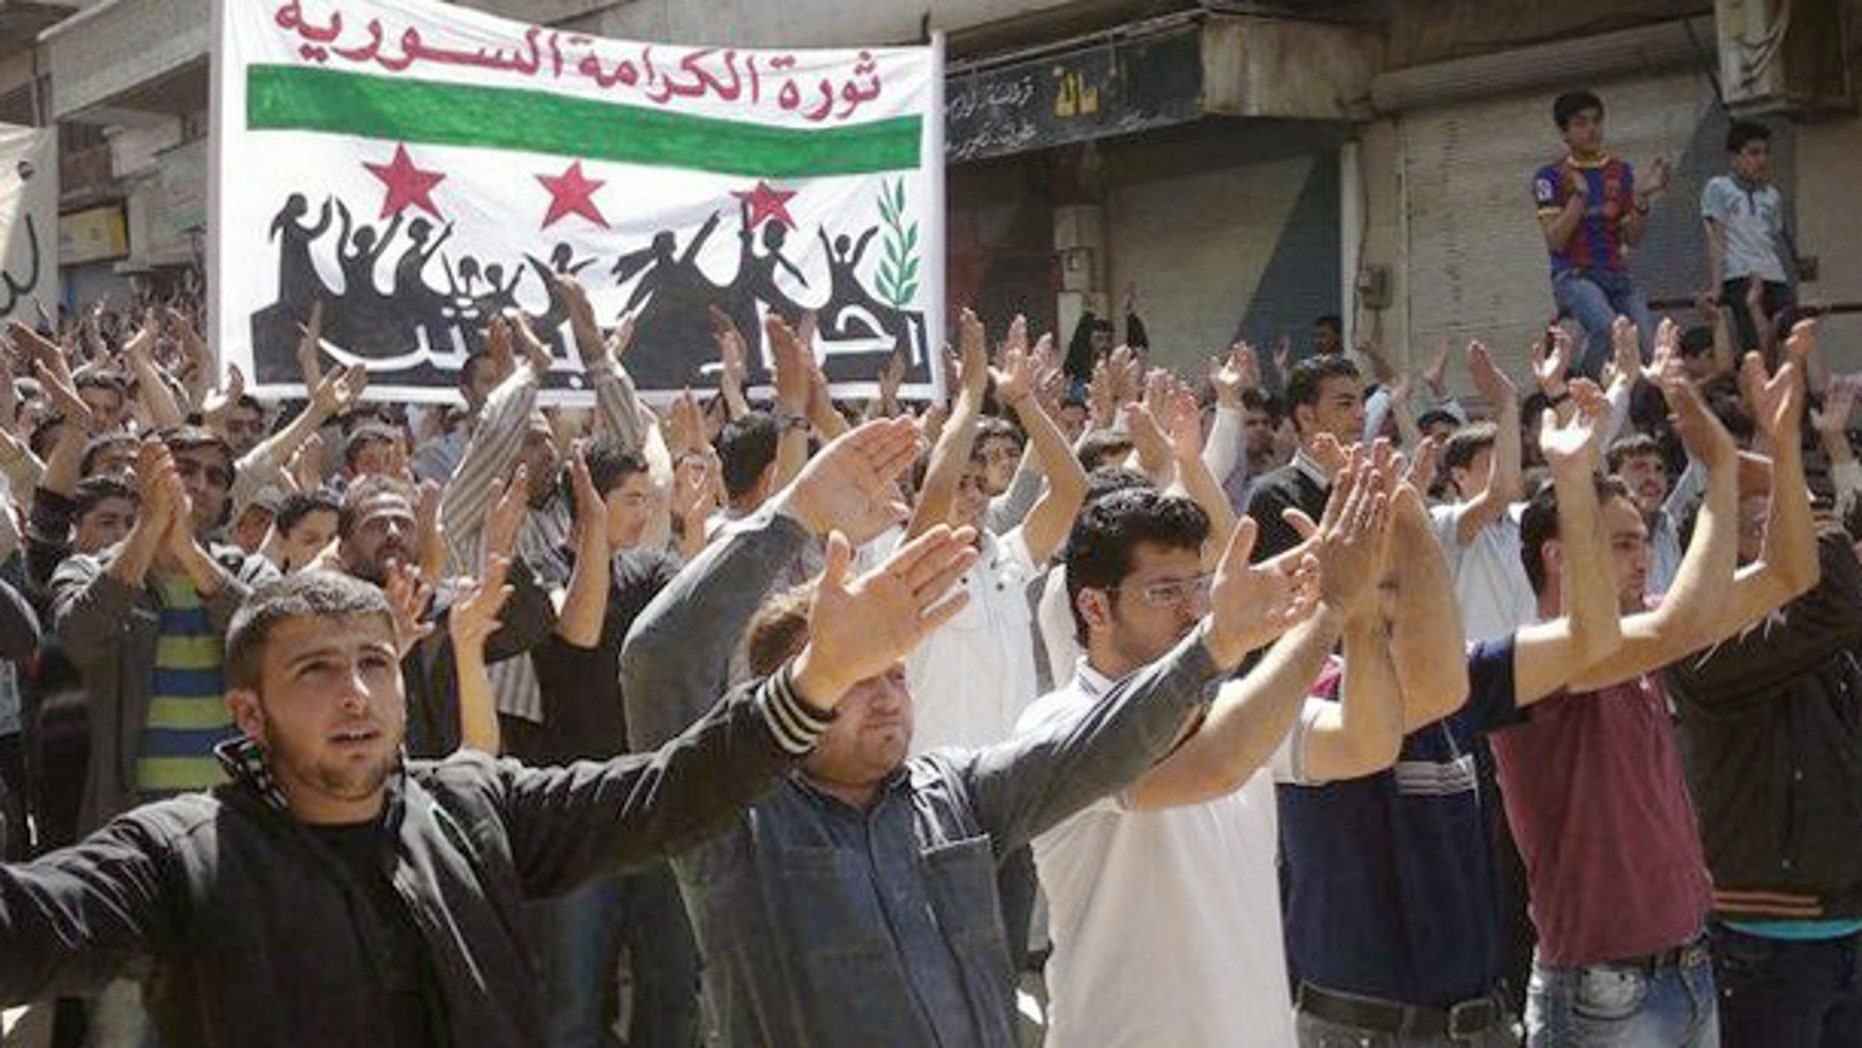 April 6, 2012: In this citizen journalism image provided by the Local Coordination Committees in Syria, Syrians chant slogans during a demonstration in Idlib, north Syria.